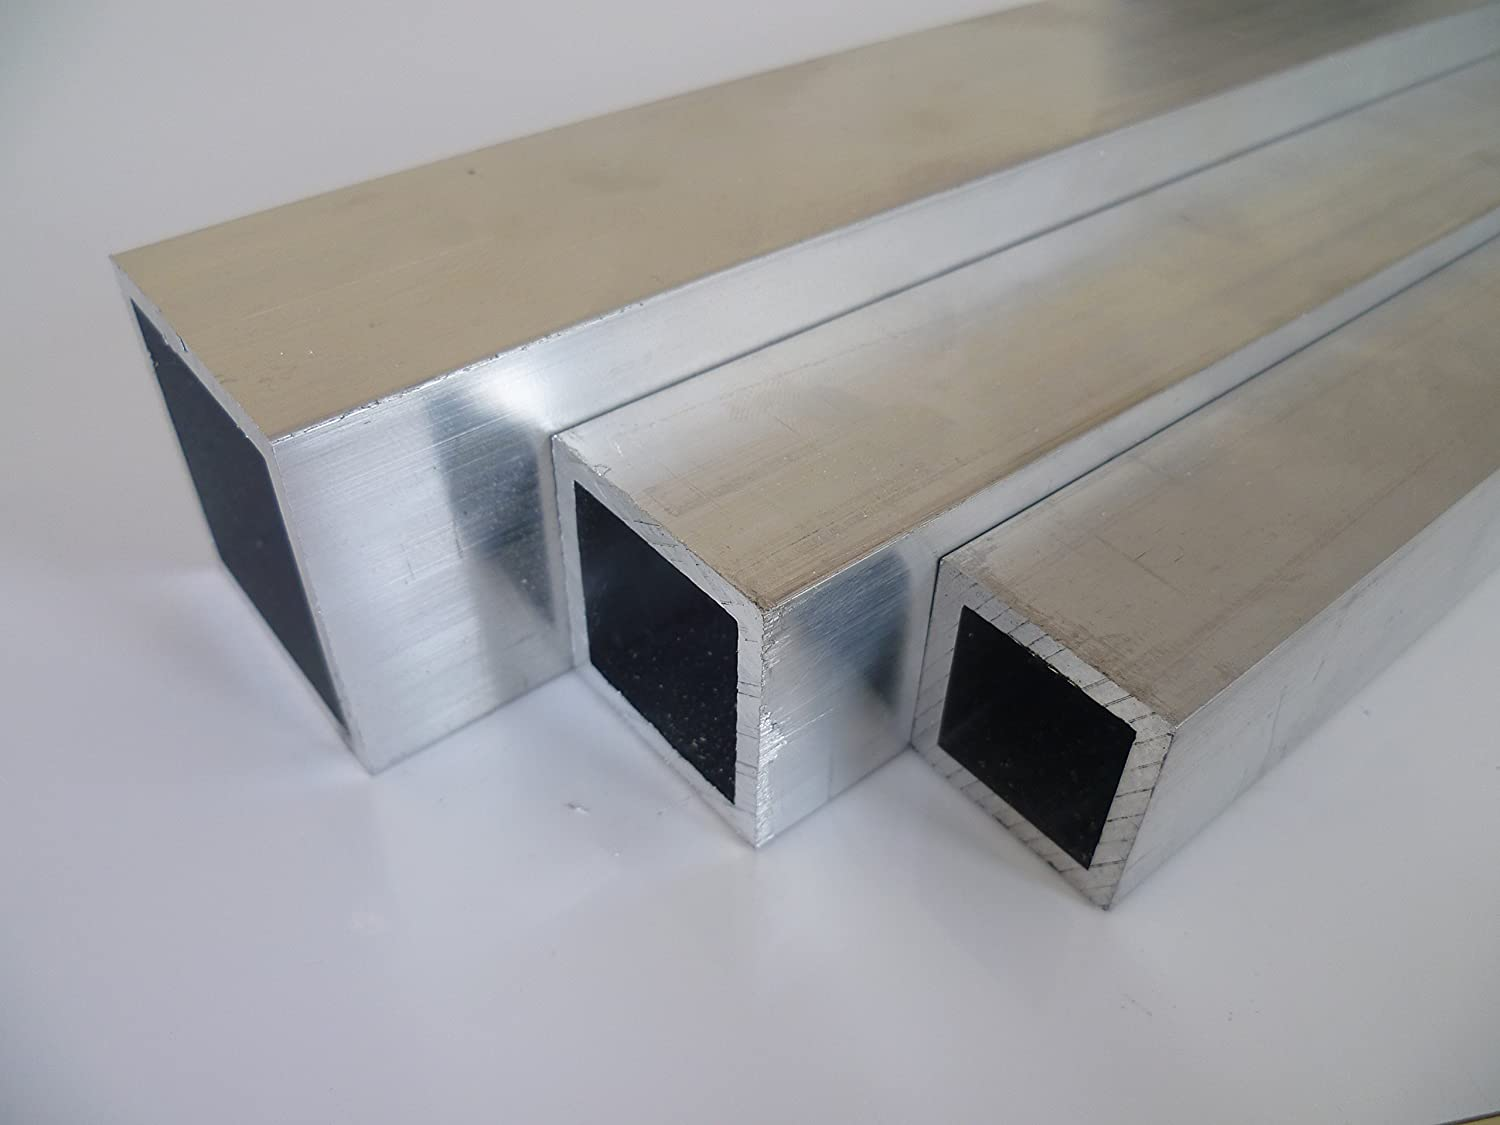 B & T Metal Aluminium Square Tube 030X030X02  mm Made ALM gsi0, 5  ° F22  Schweissbar Suitable for Anodising Length Approx. 2  m (2000  mm +/-5  mm) B&T